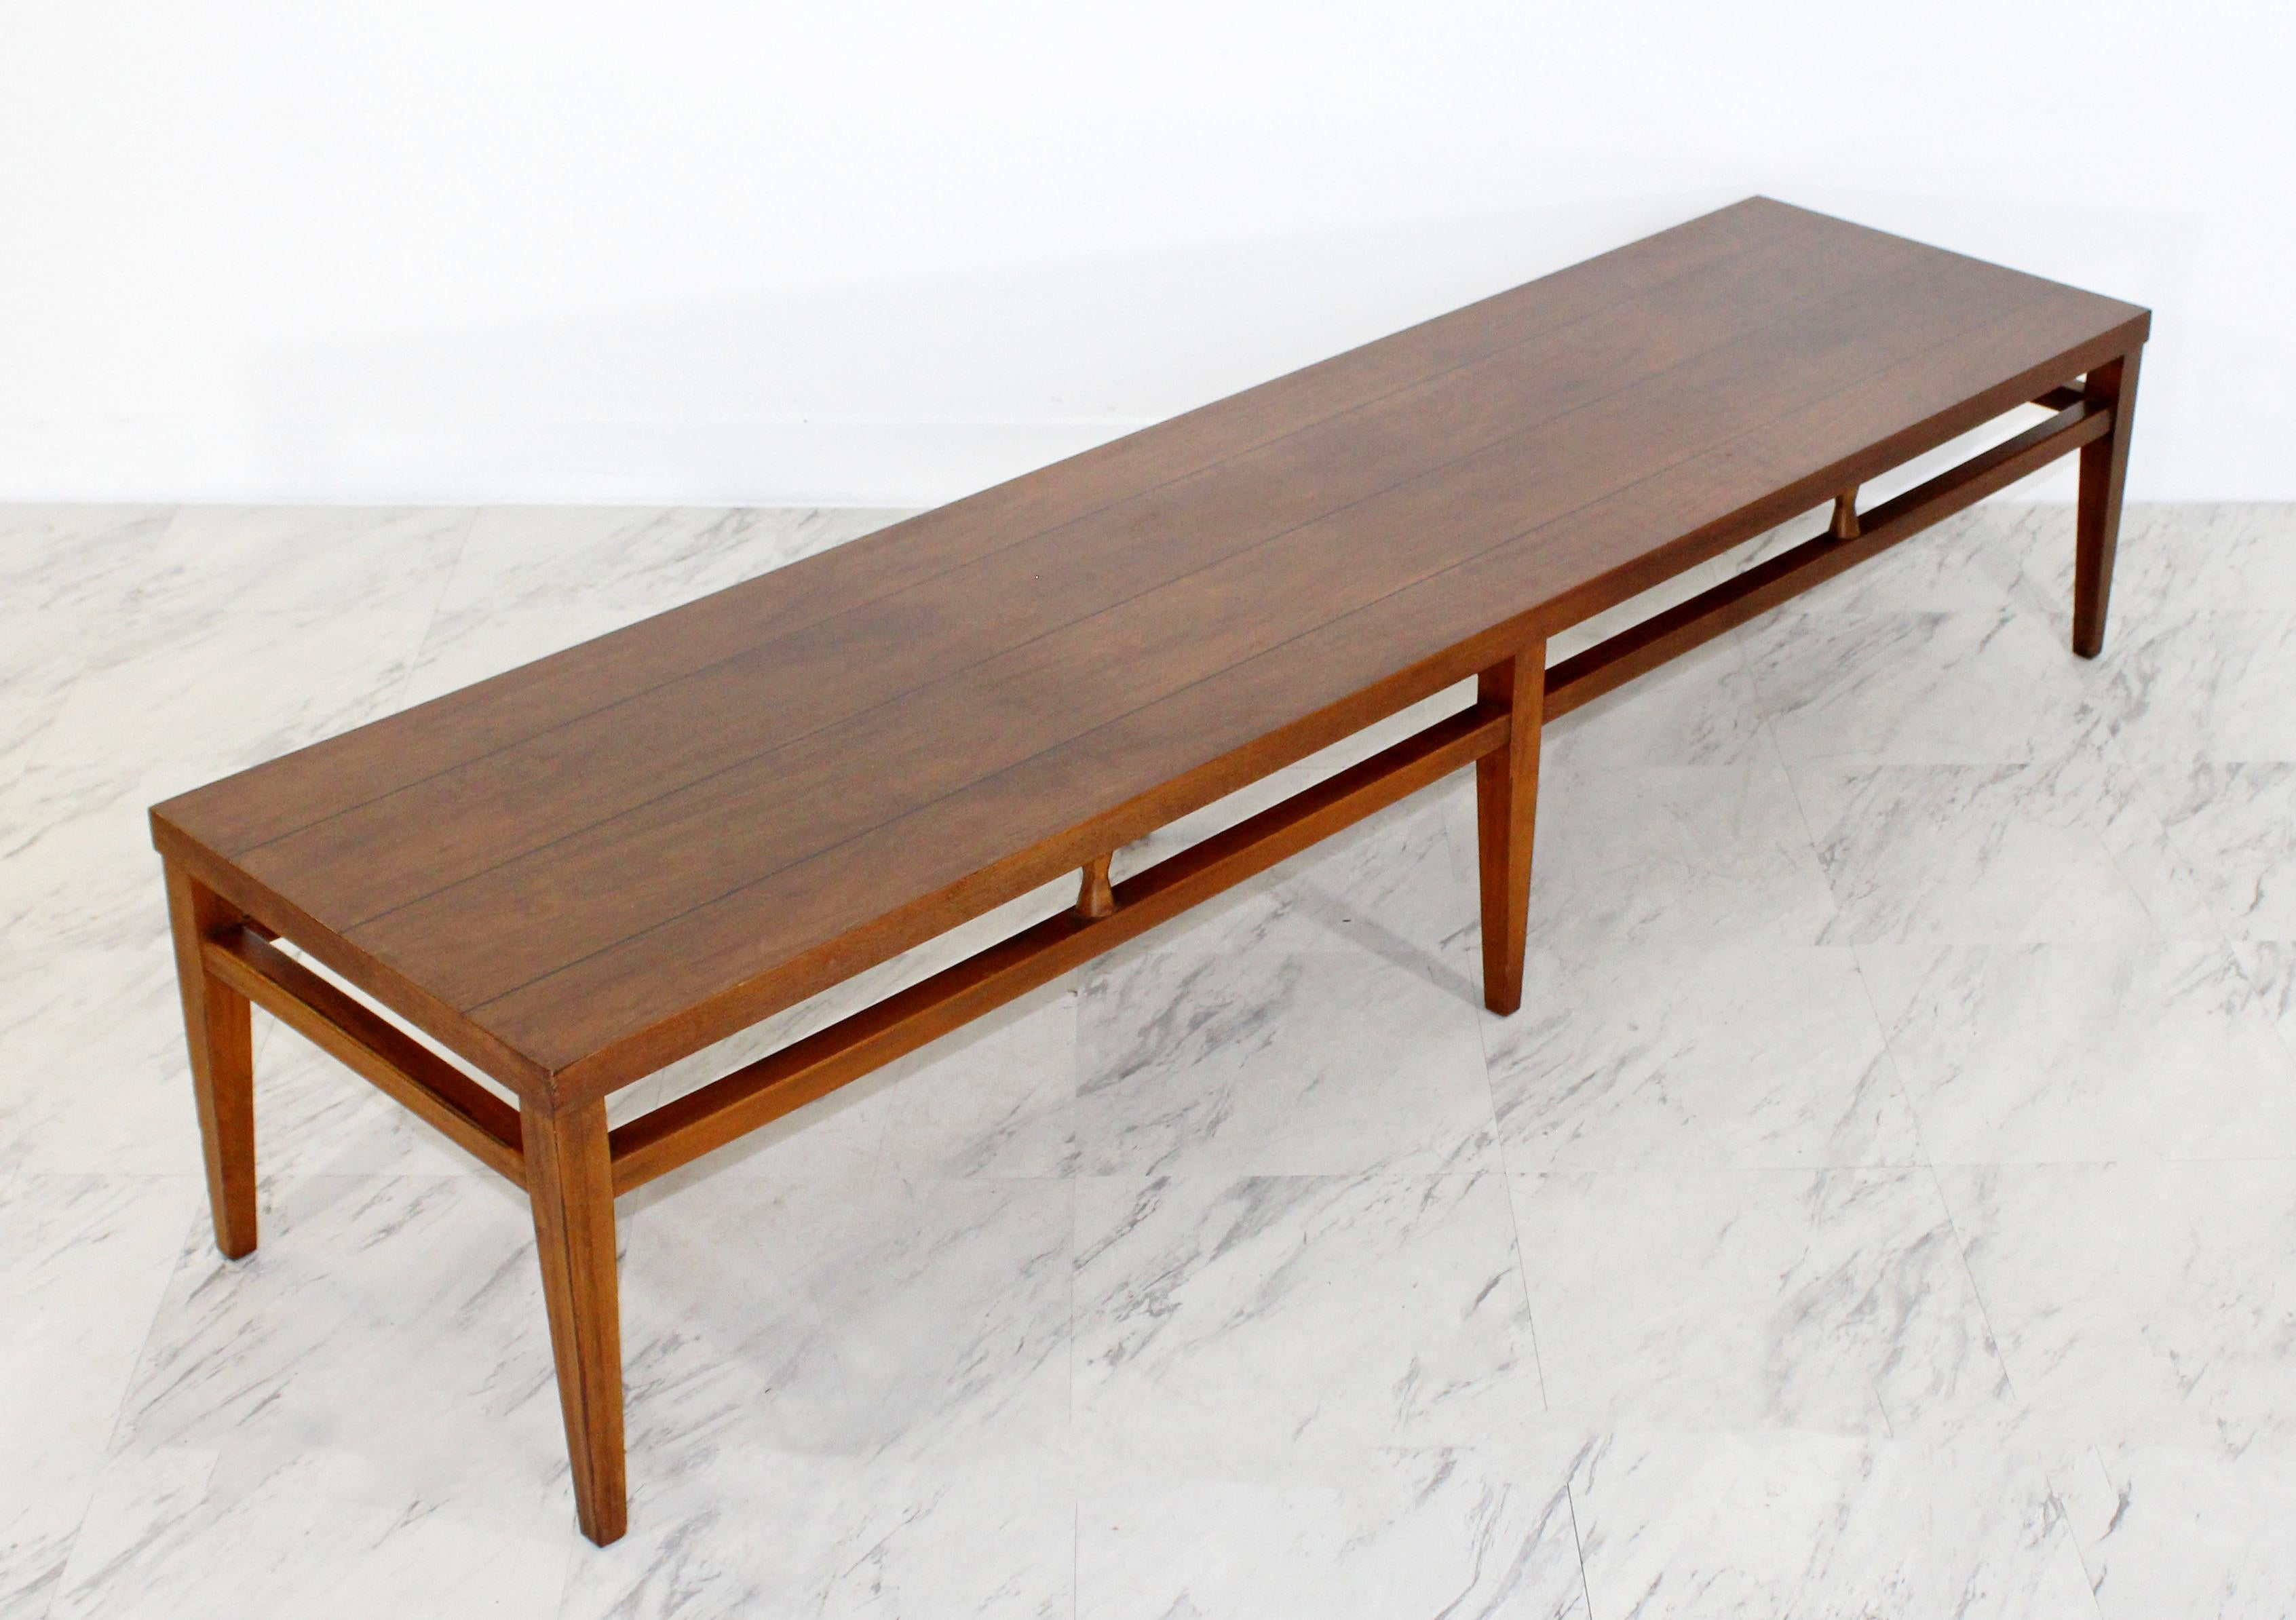 Mid Century Modern Lane Tuxedo Long Low Coffee Table Bench, 1960s